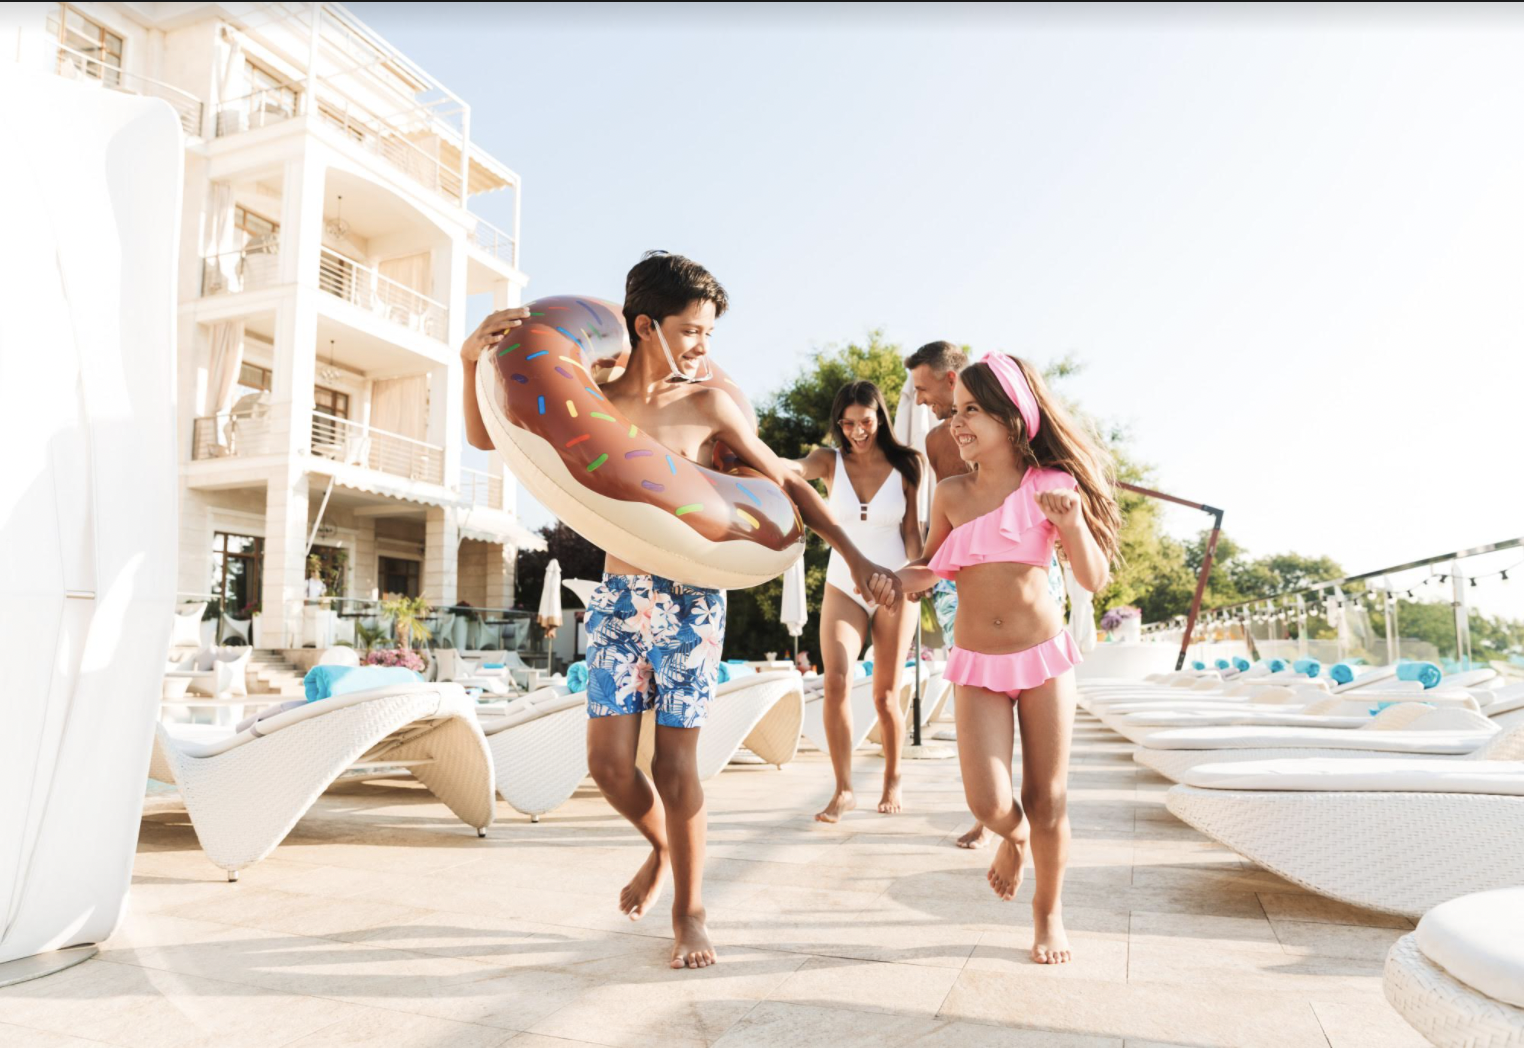 Out There Doing It! Make the Most Of Your Time off With Smart Vacation Planning